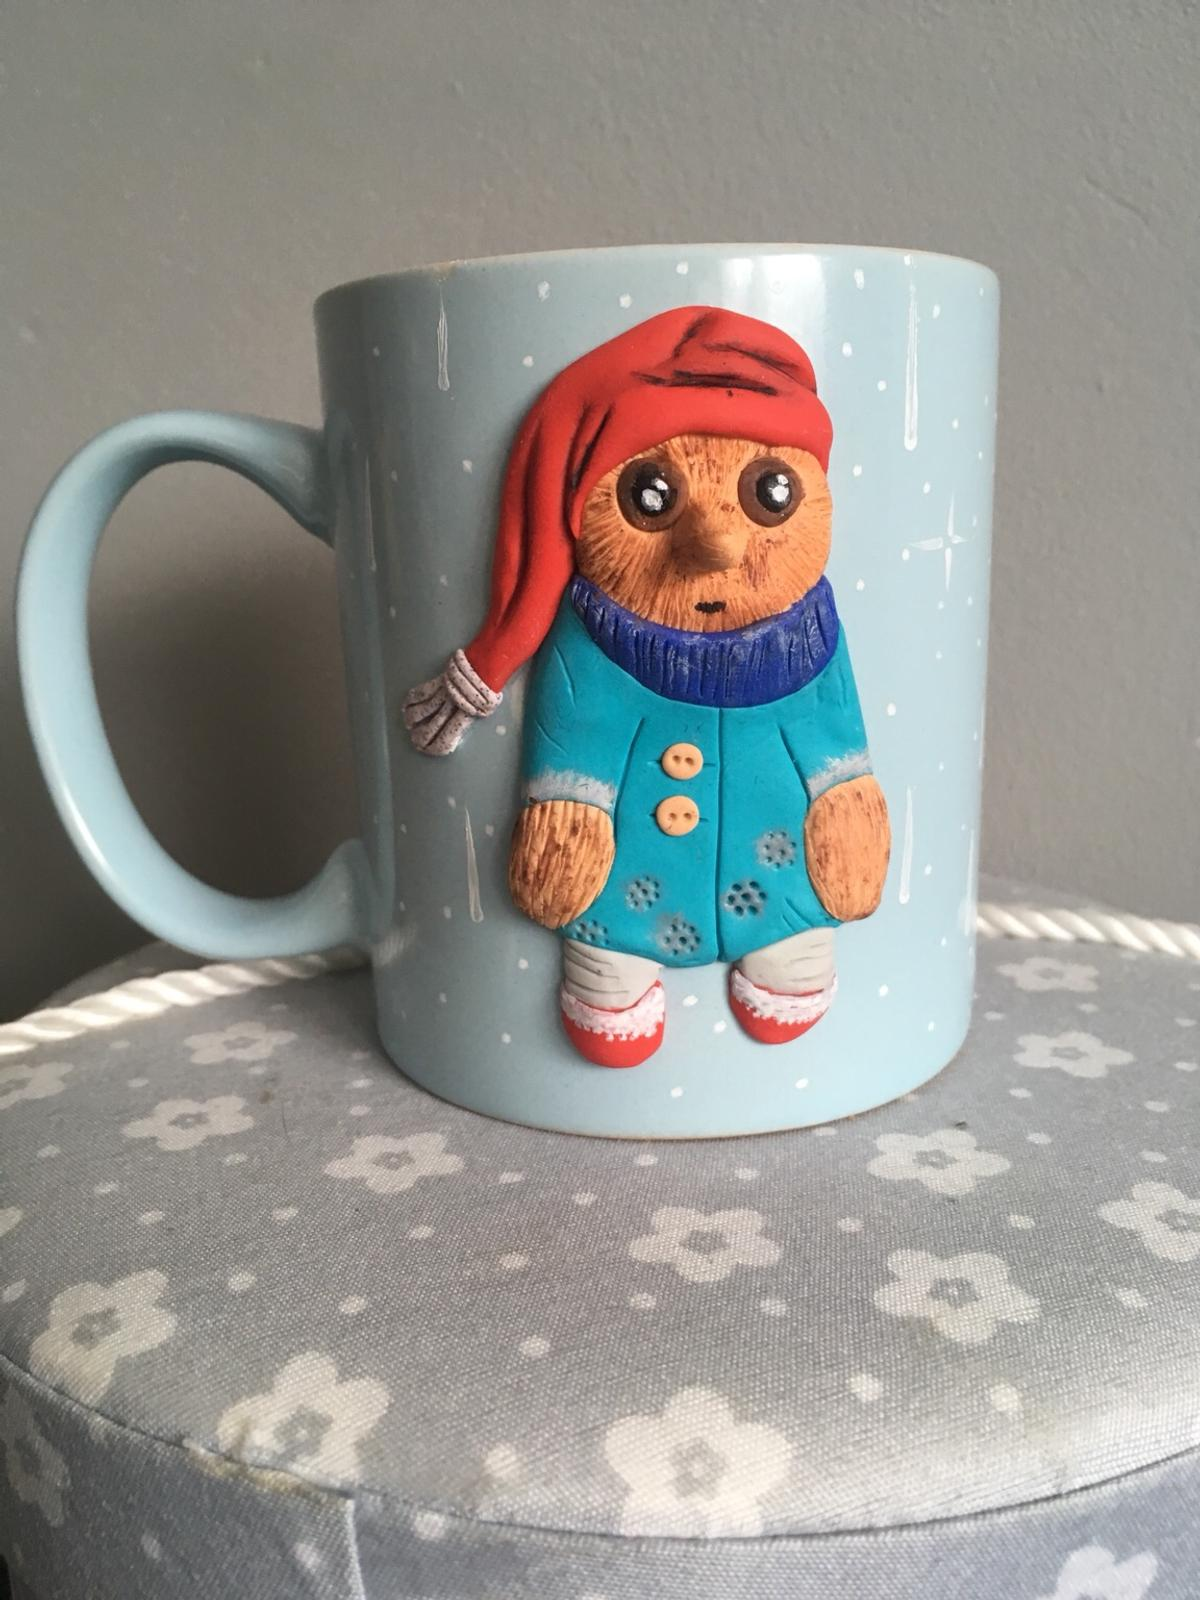 Polymer Clay Christmas Tea Cup In Me15 Maidstone For 15 00 For Sale Shpock